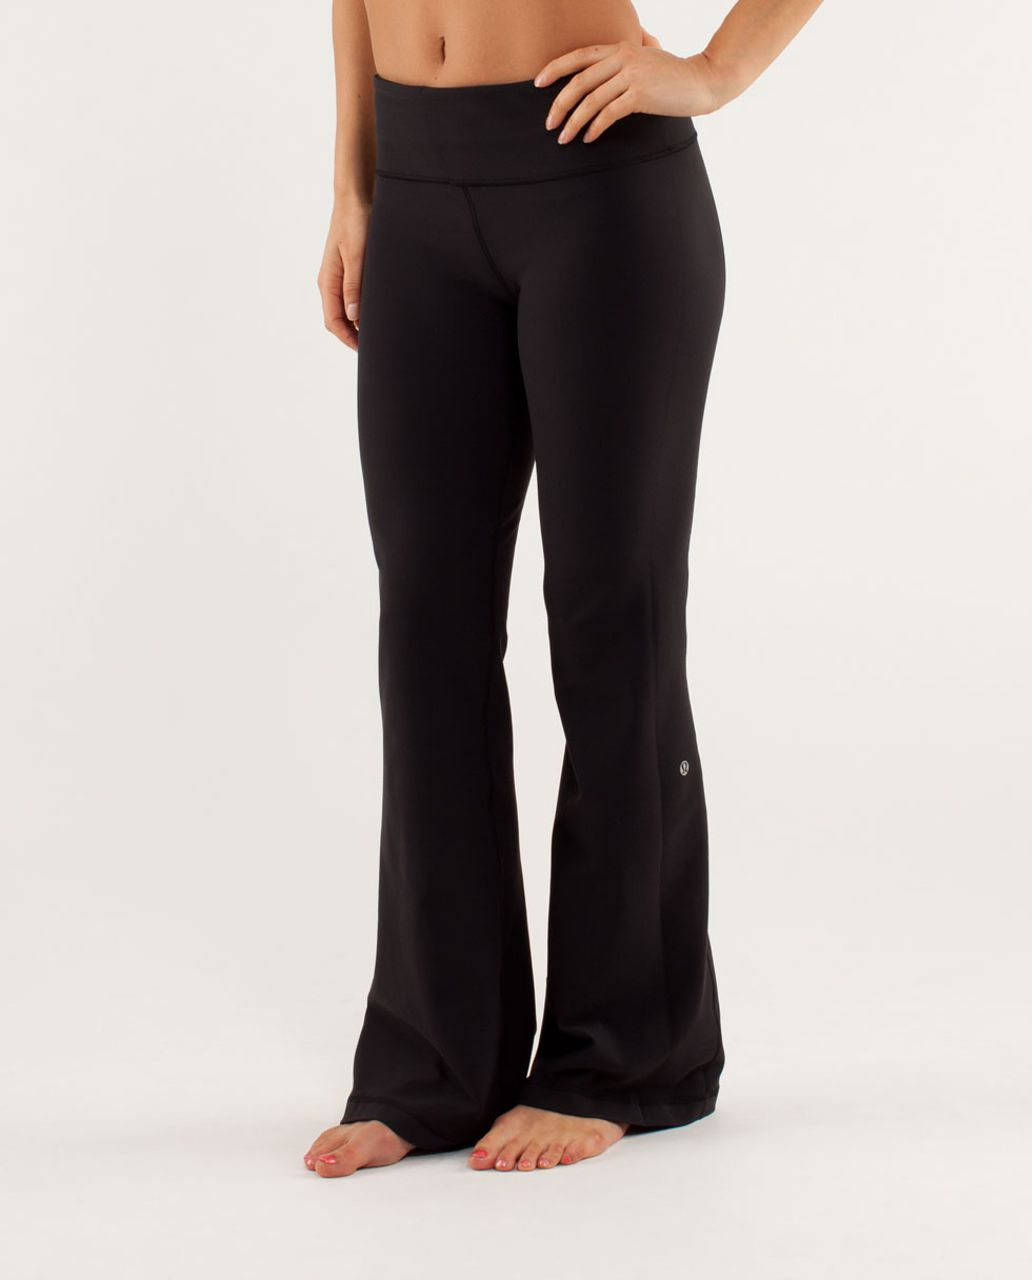 Lululemon Groove Pant *New (Tall) - Black / Sea Stripe Polar Haze Black / Polar Haze